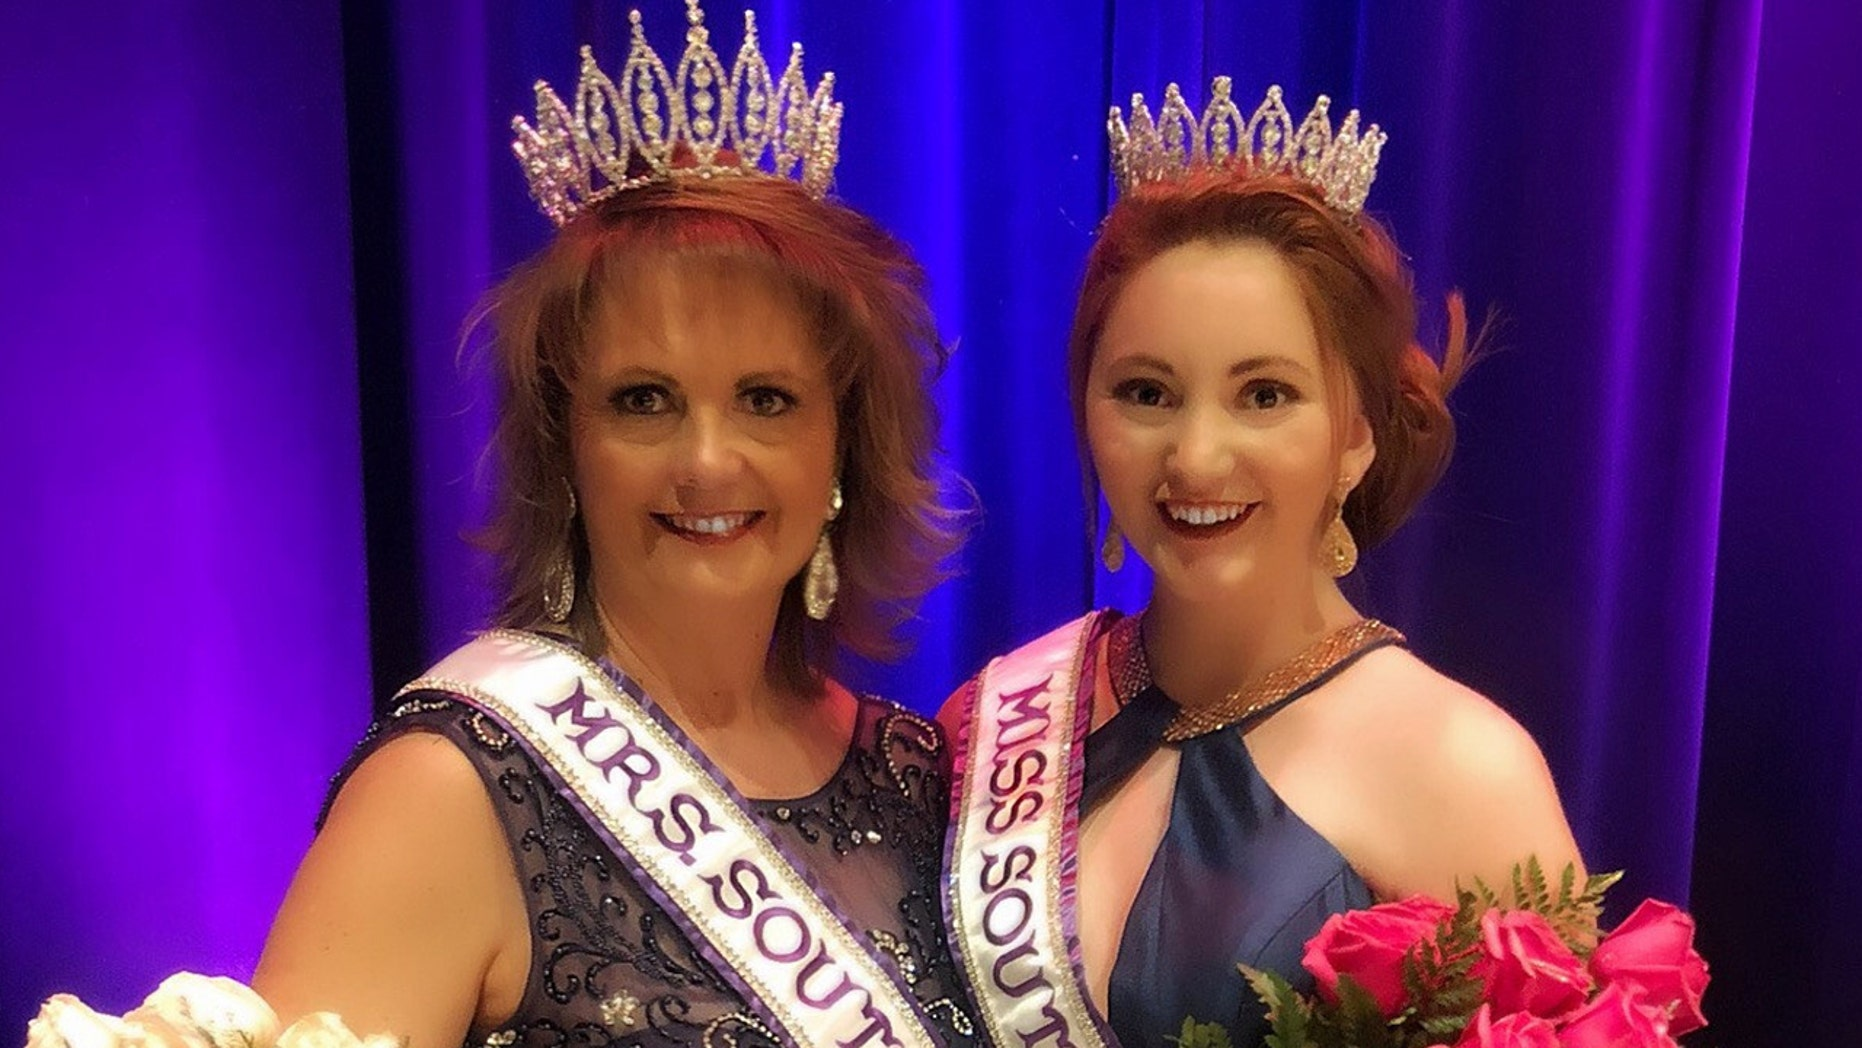 A mother and daughter both won titles at the same beauty pageant in South Dakota.